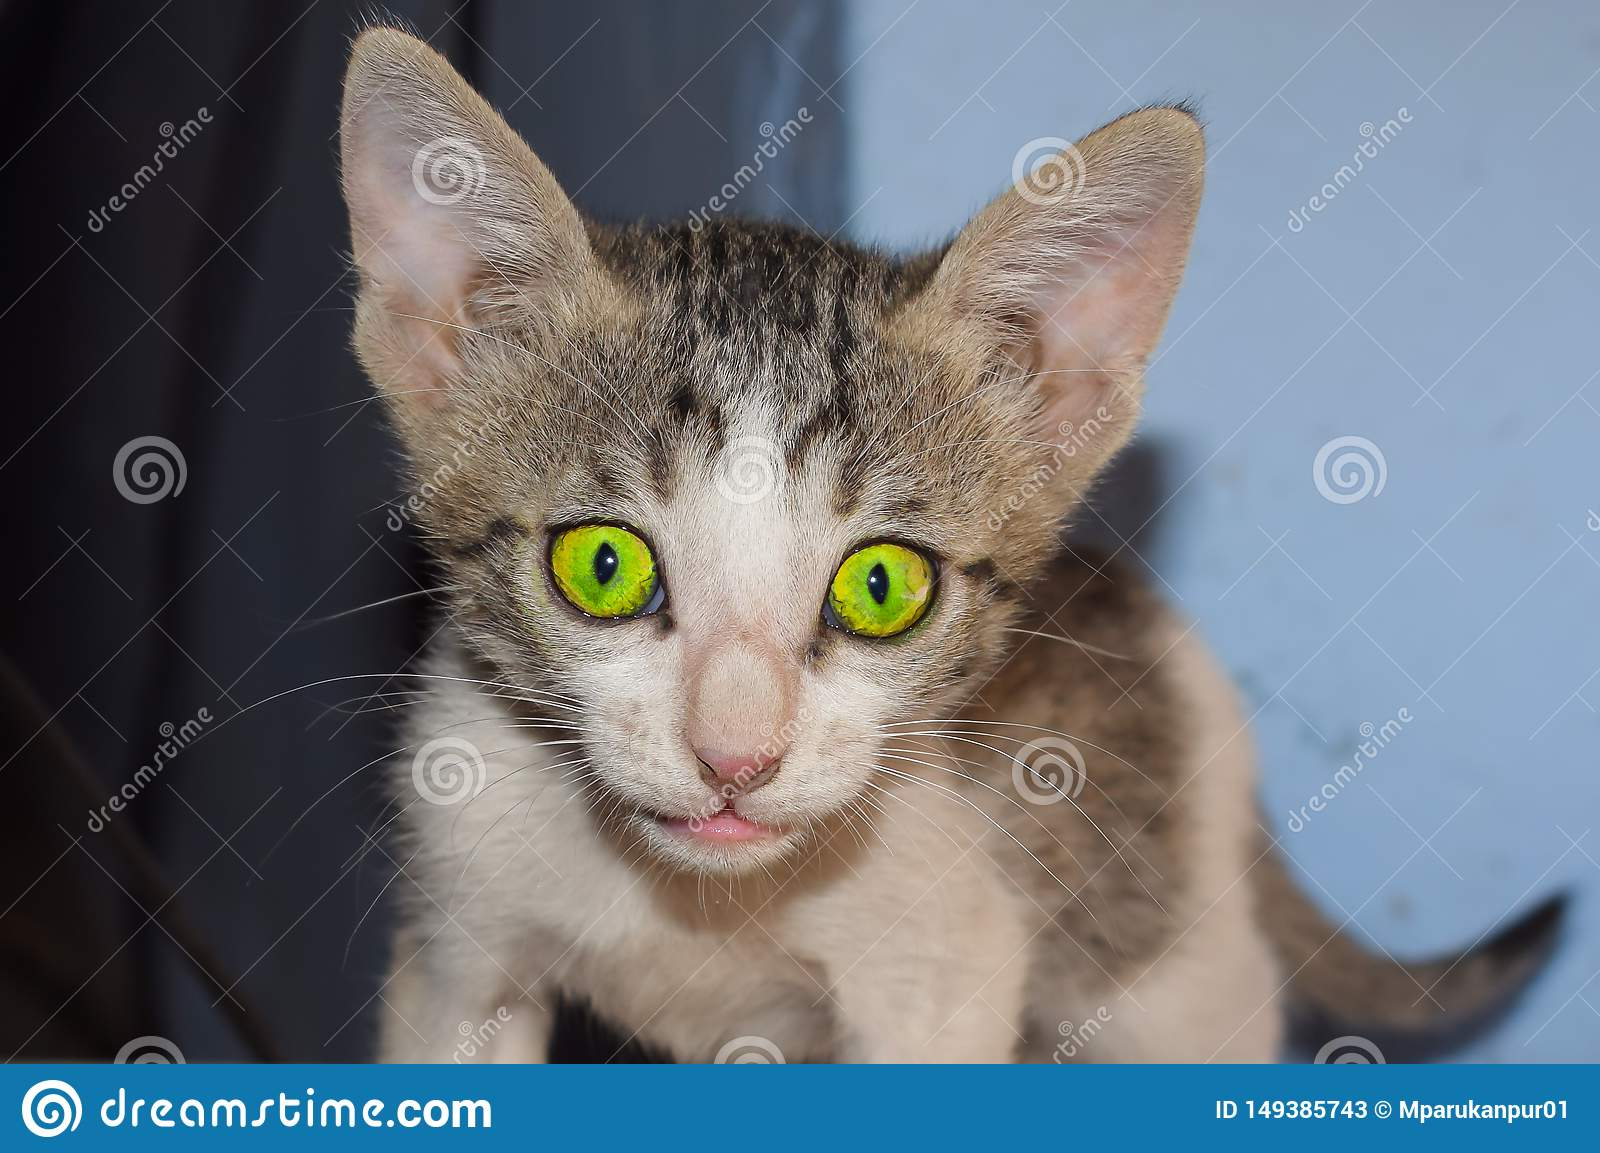 Closeup of a domrstic kitten at home